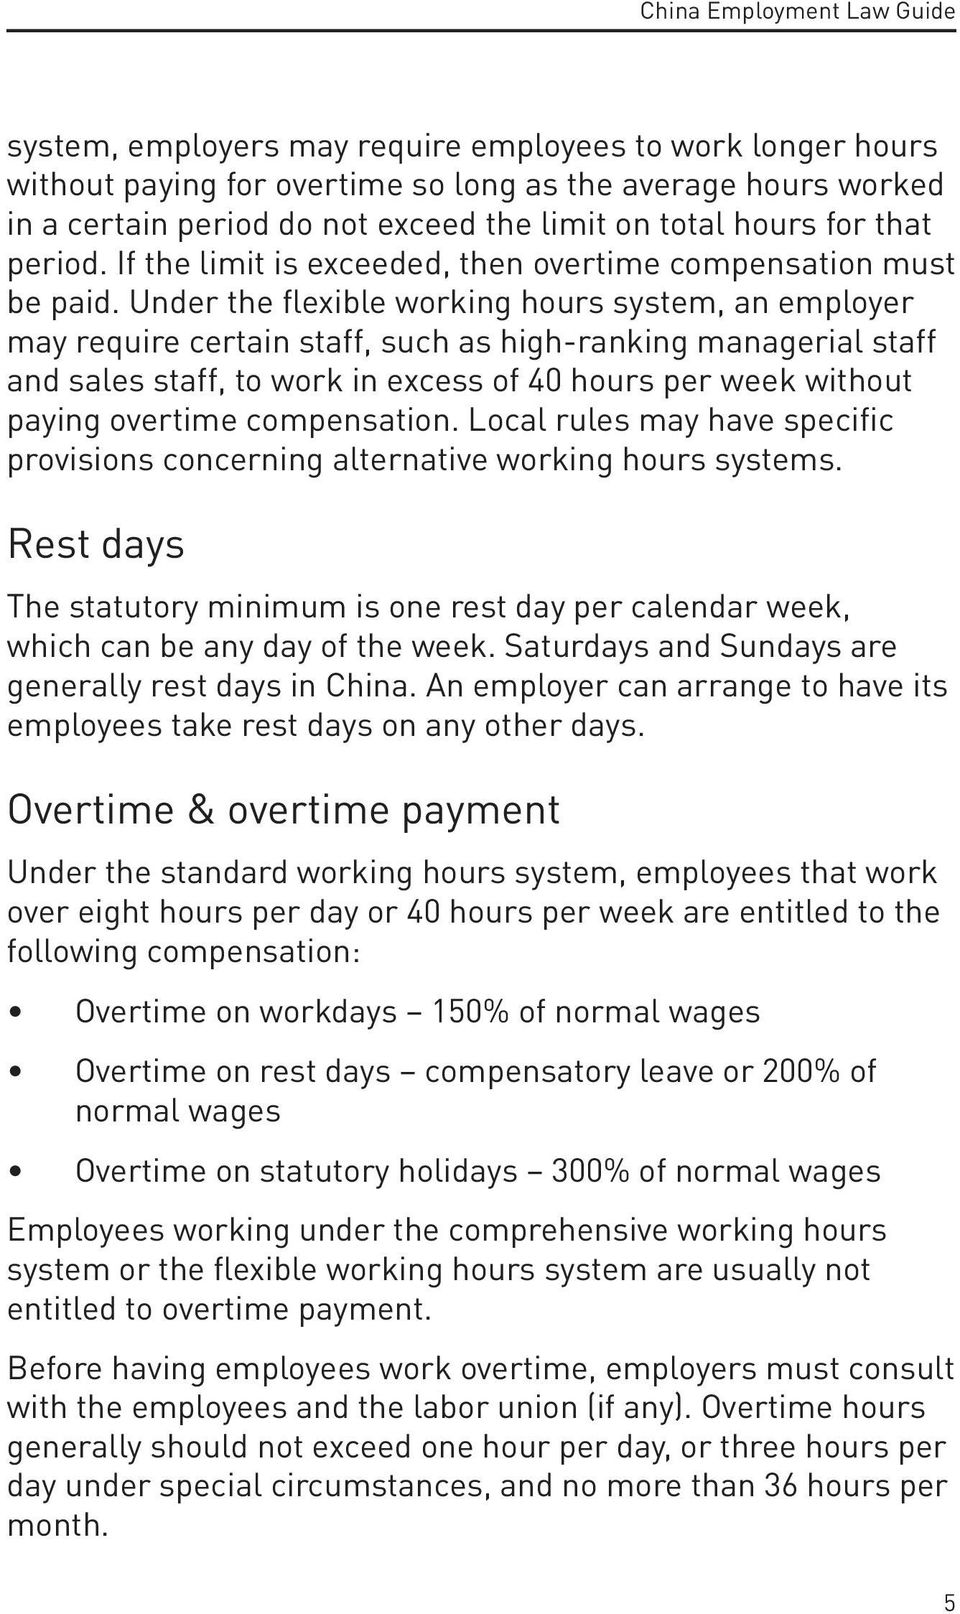 Under the flexible working hours system, an employer may require certain staff, such as high-ranking managerial staff and sales staff, to work in excess of 40 hours per week without paying overtime